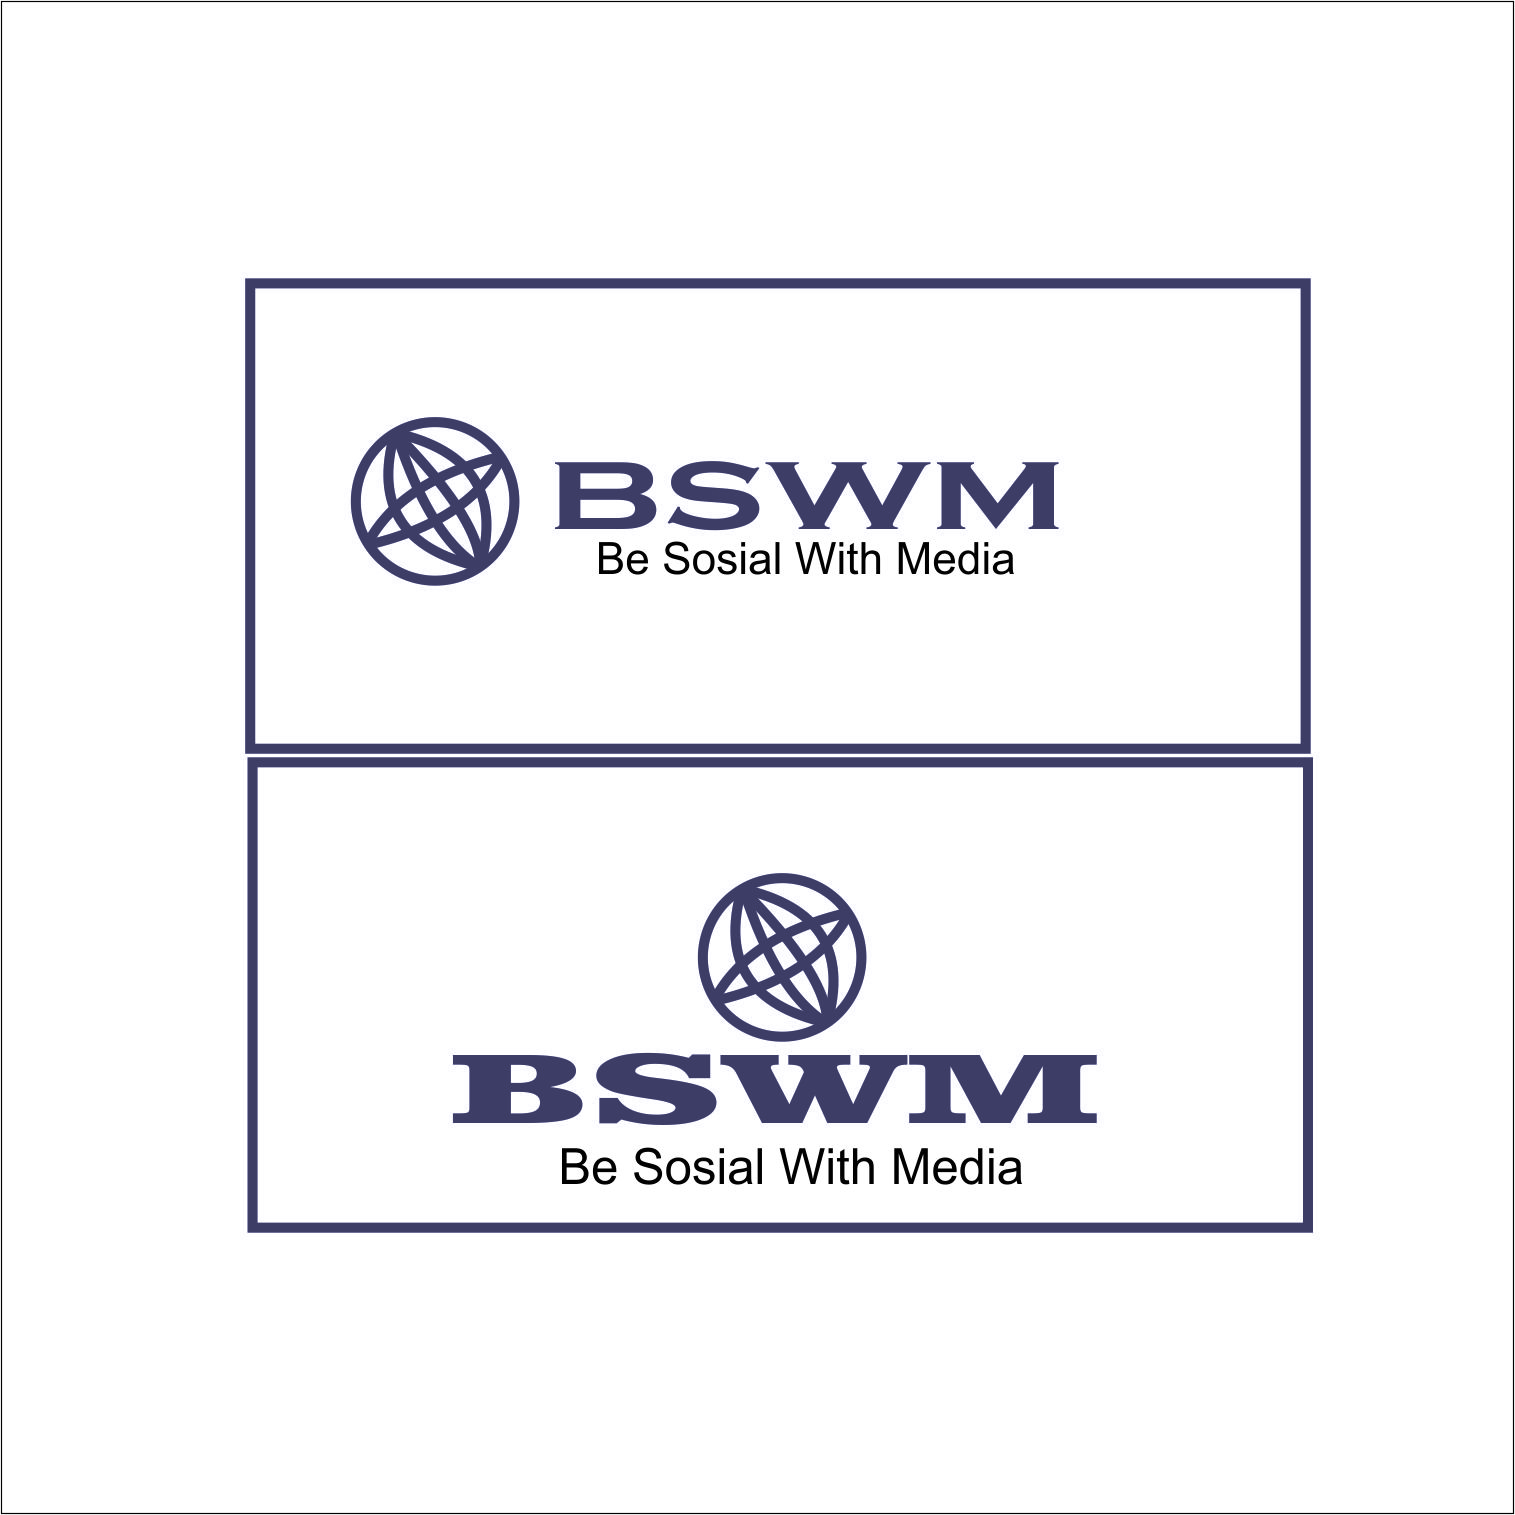 Logo Design by Agus Martoyo - Entry No. 81 in the Logo Design Contest Imaginative Logo Design for Be Social With Media.